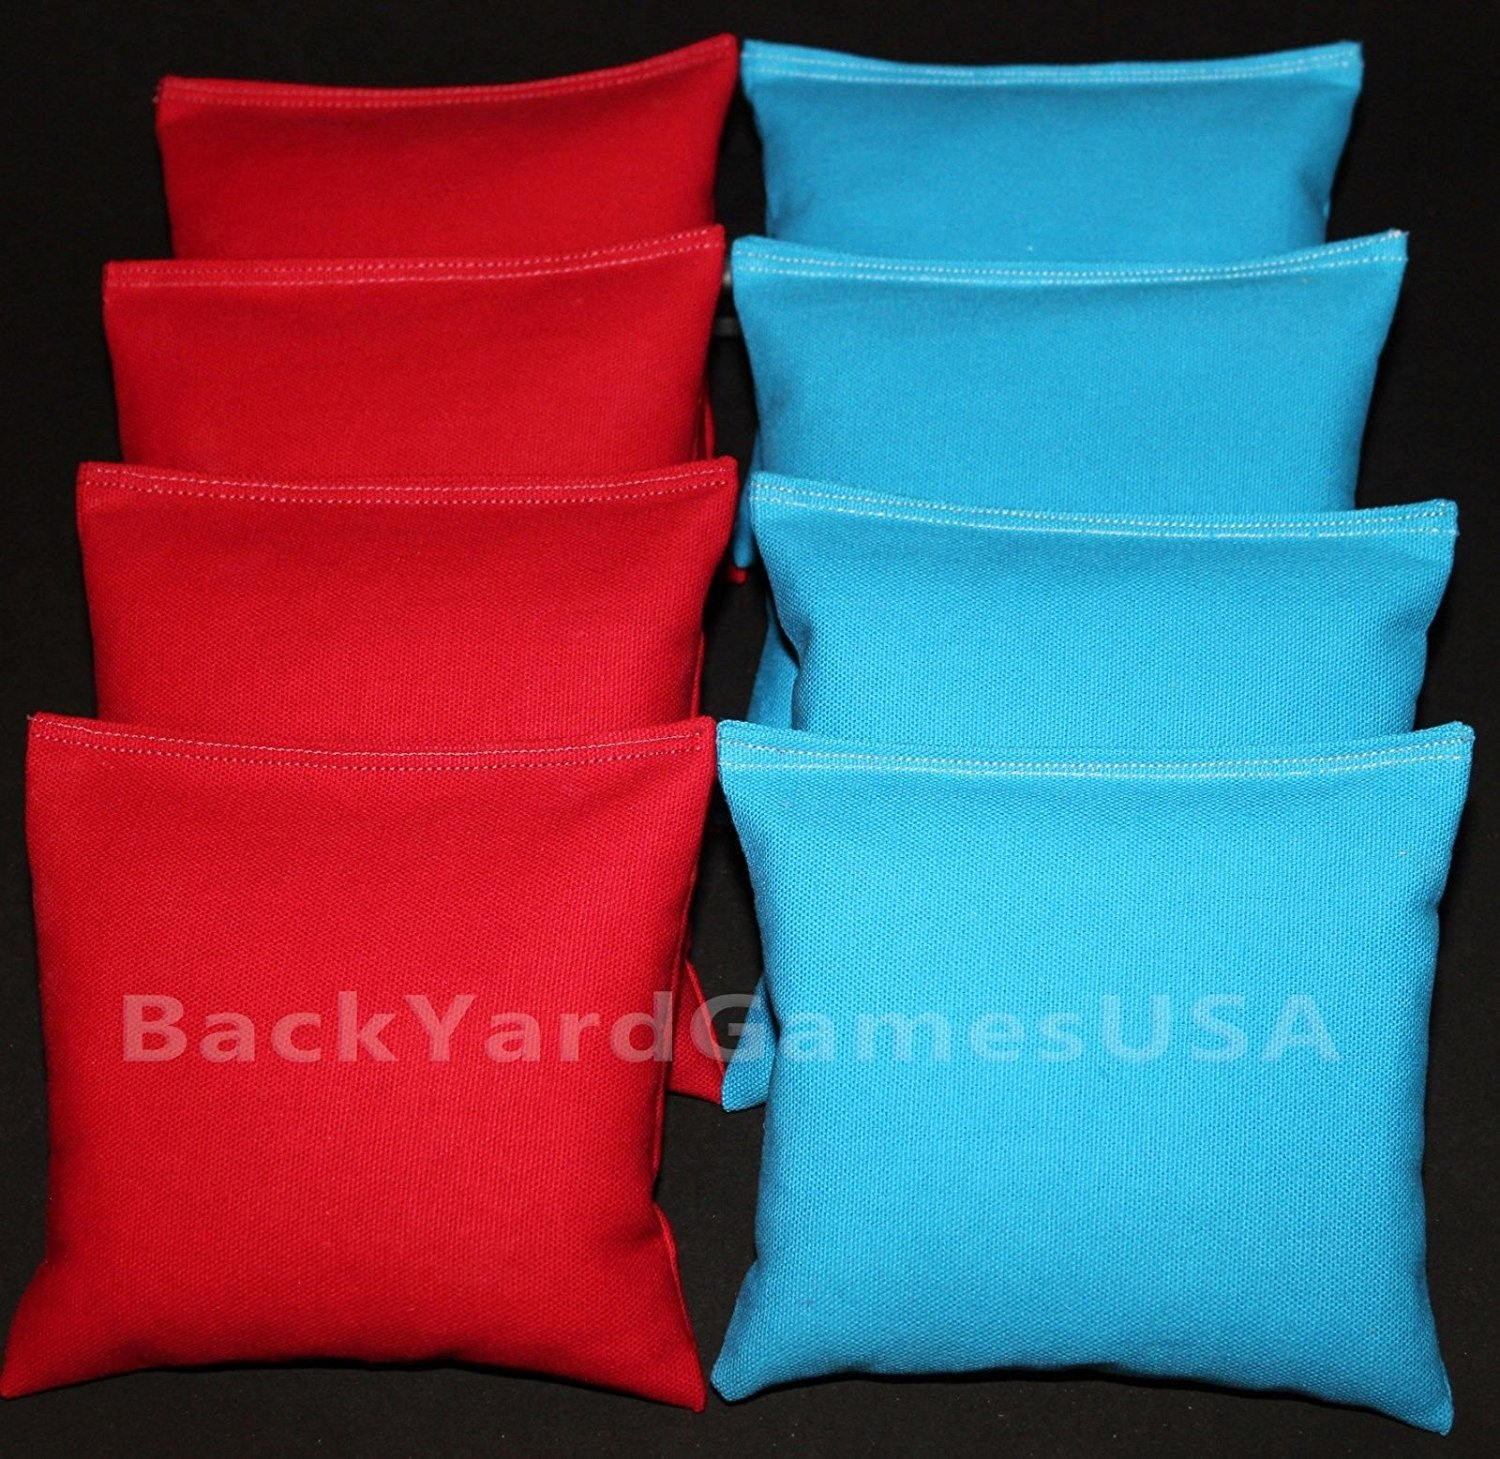 Cornhole Bean Bags Red & Turquoise 8 Aca Corn Hole Game Toss Bags Marshall Herd, *Handmade Quality Craftsmanship (I Personally Make Each Bag).., By Unbranded*